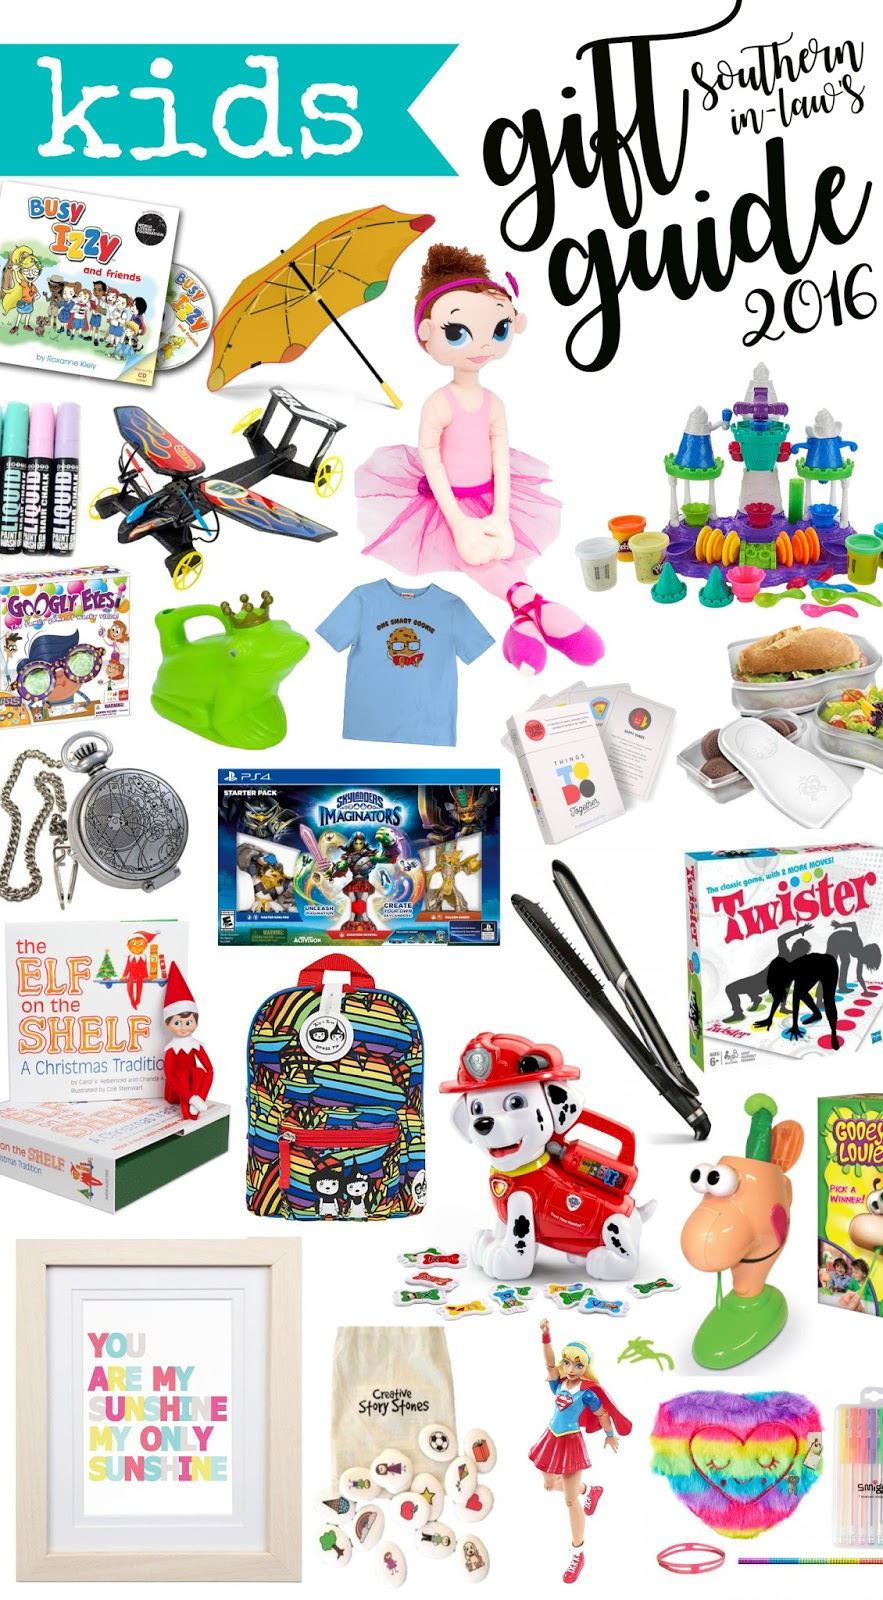 Gifts ideas for kids this christmas